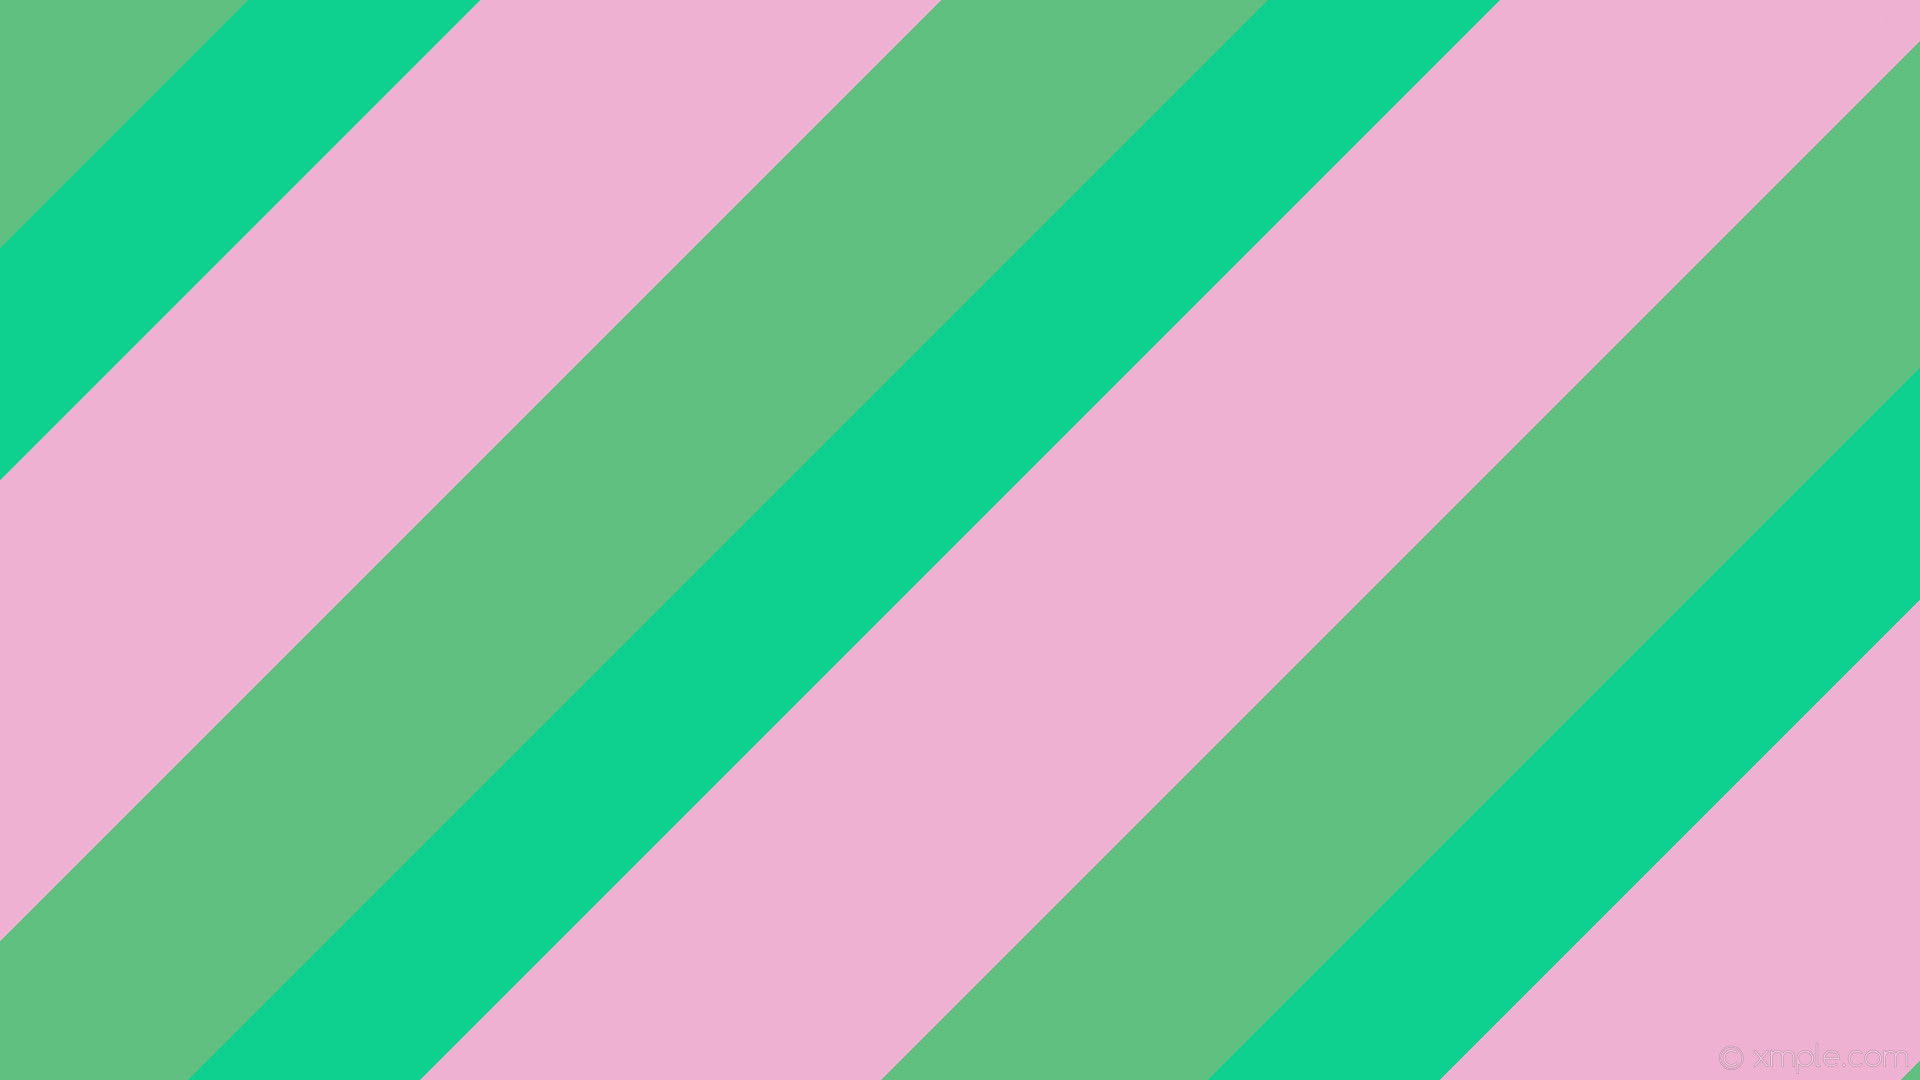 pink and turquoise wallpaper 64 images